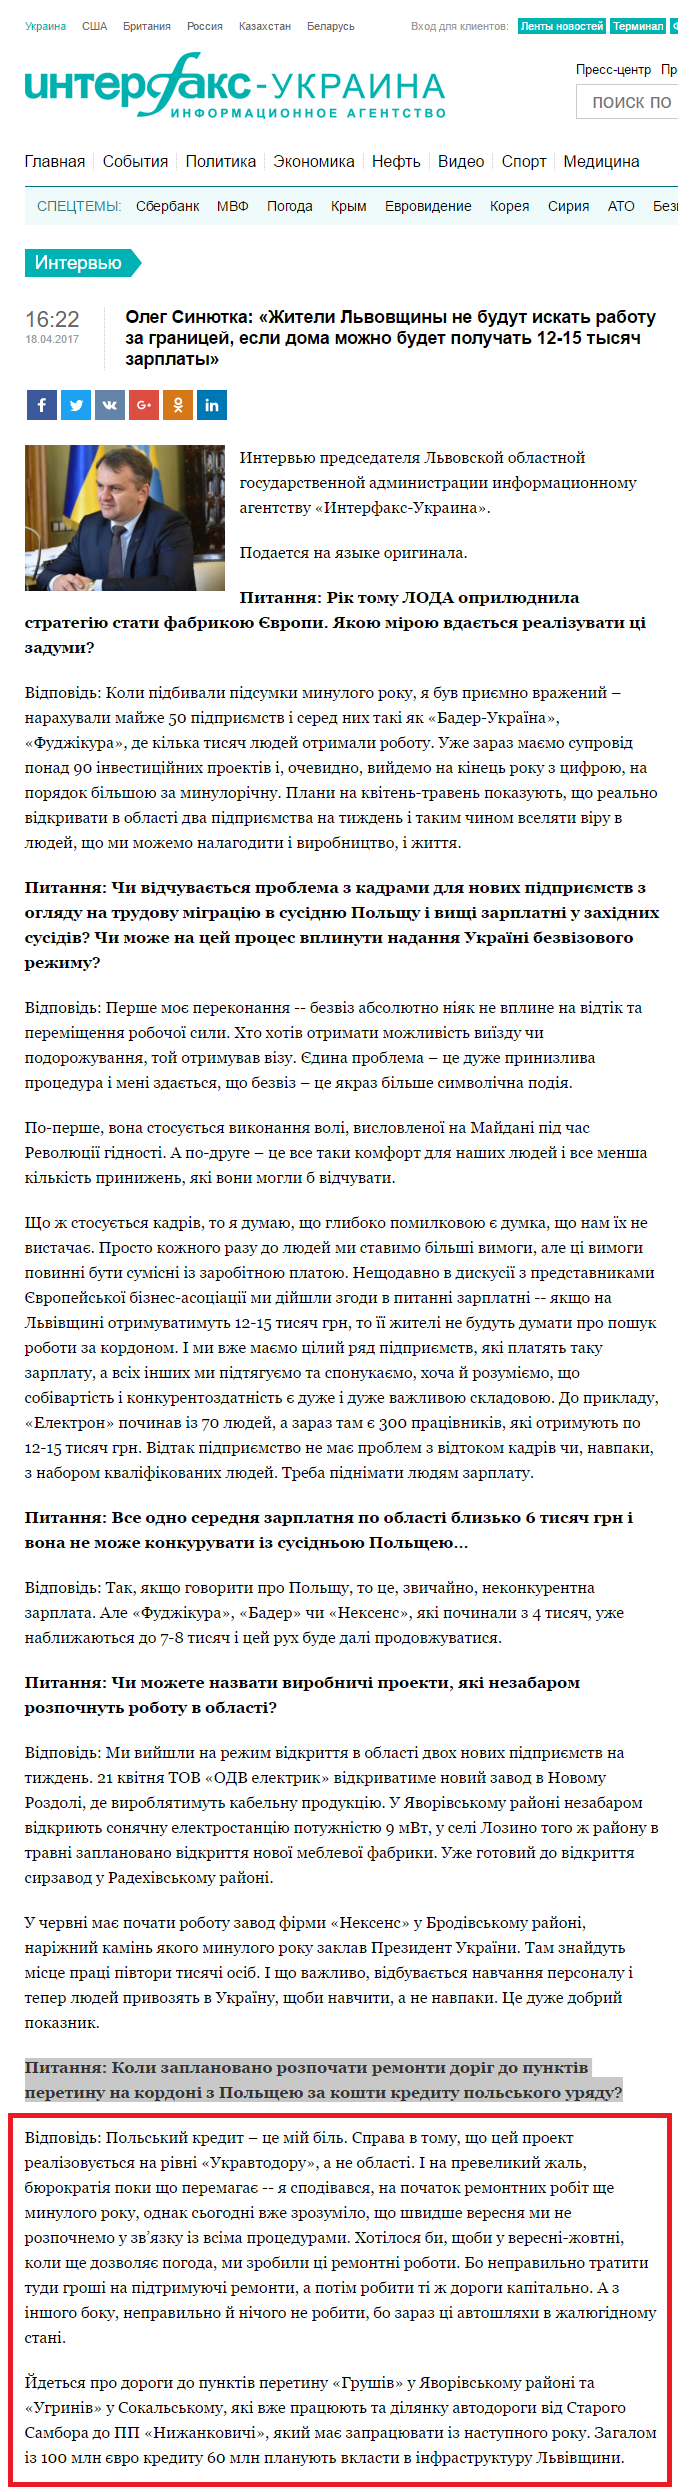 http://interfax.com.ua/news/interview/416414.html